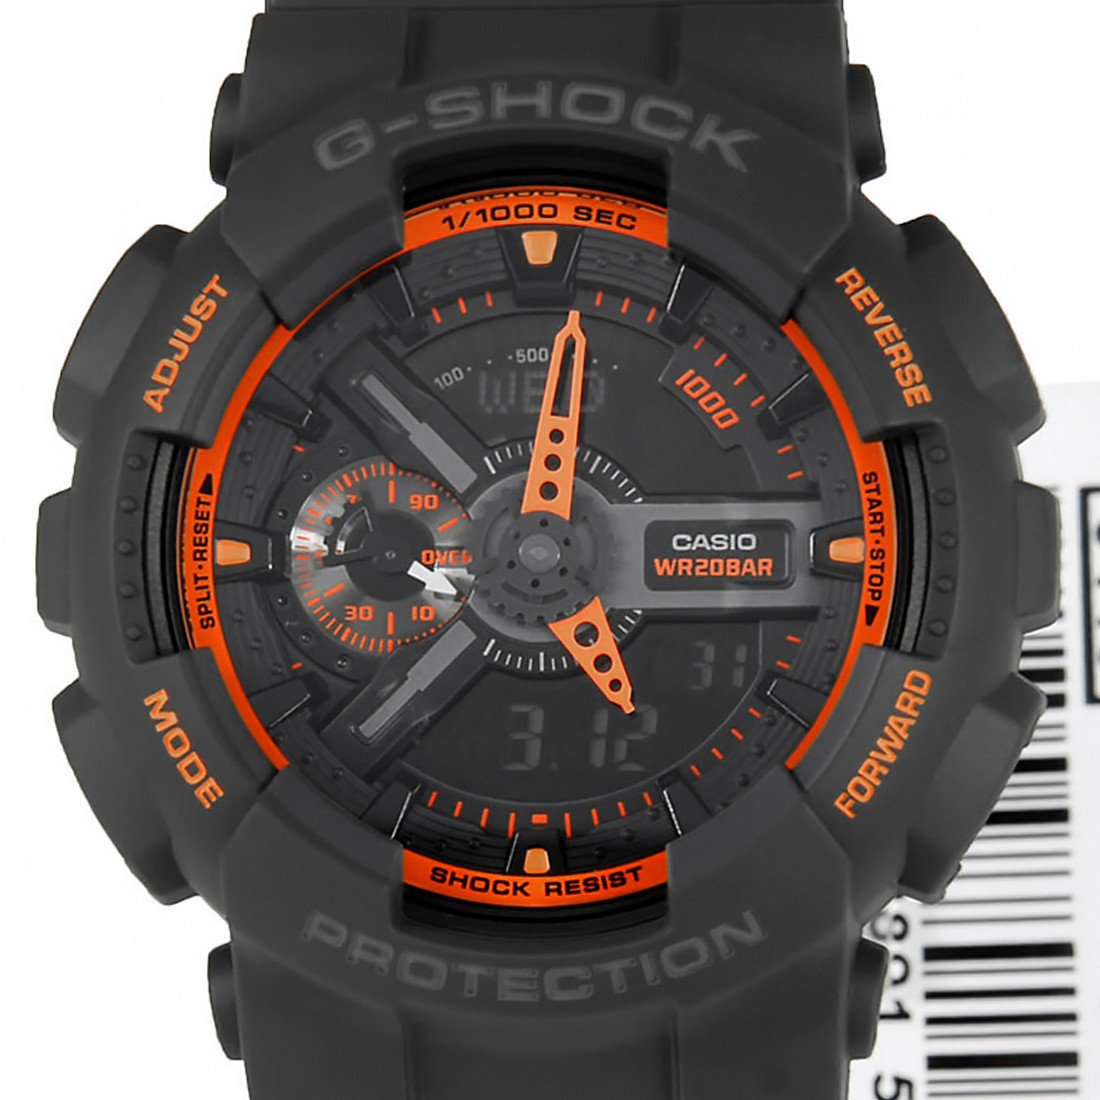 Casio Watches G-Shock Prices